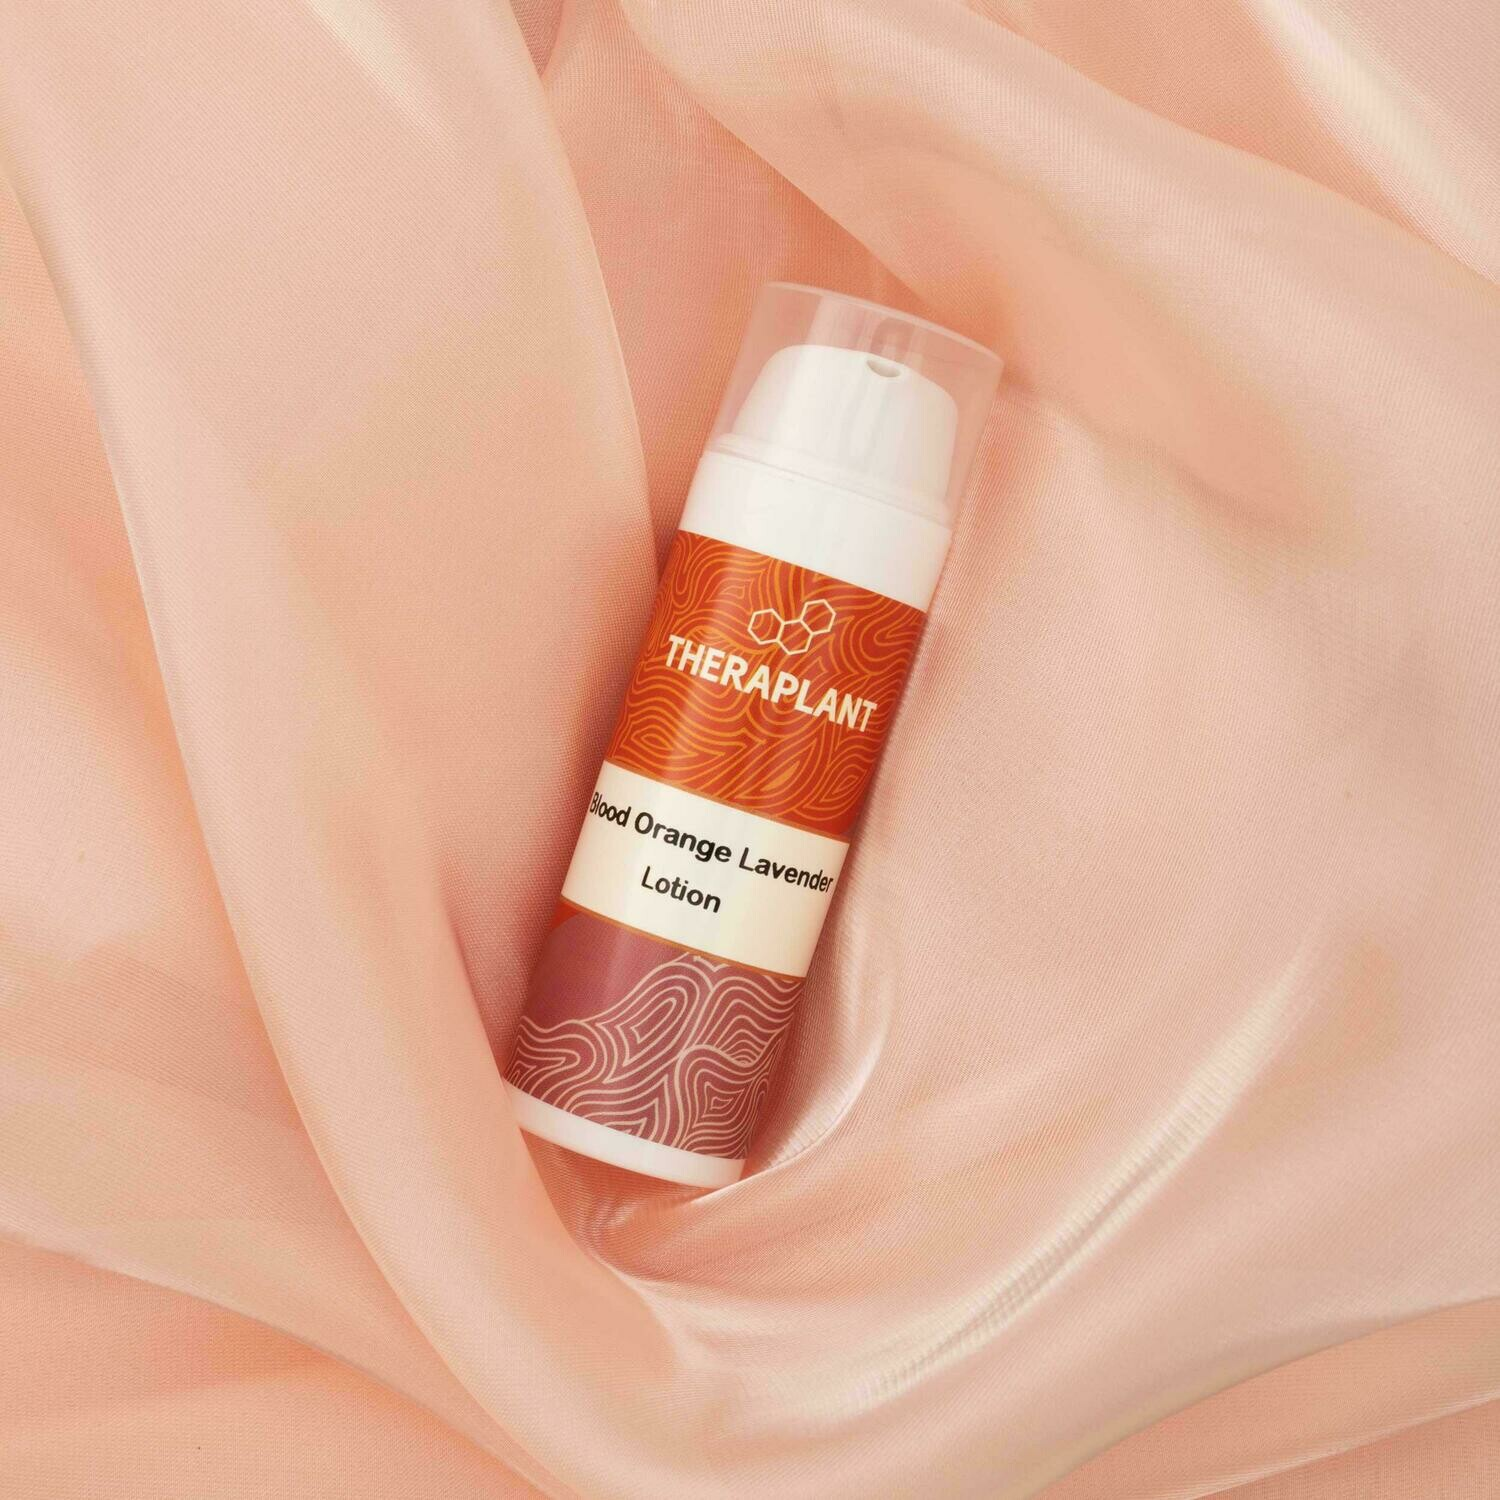 Blood Orange Lavender Lotion 11098 (50mL Lotion)(Theraplant)